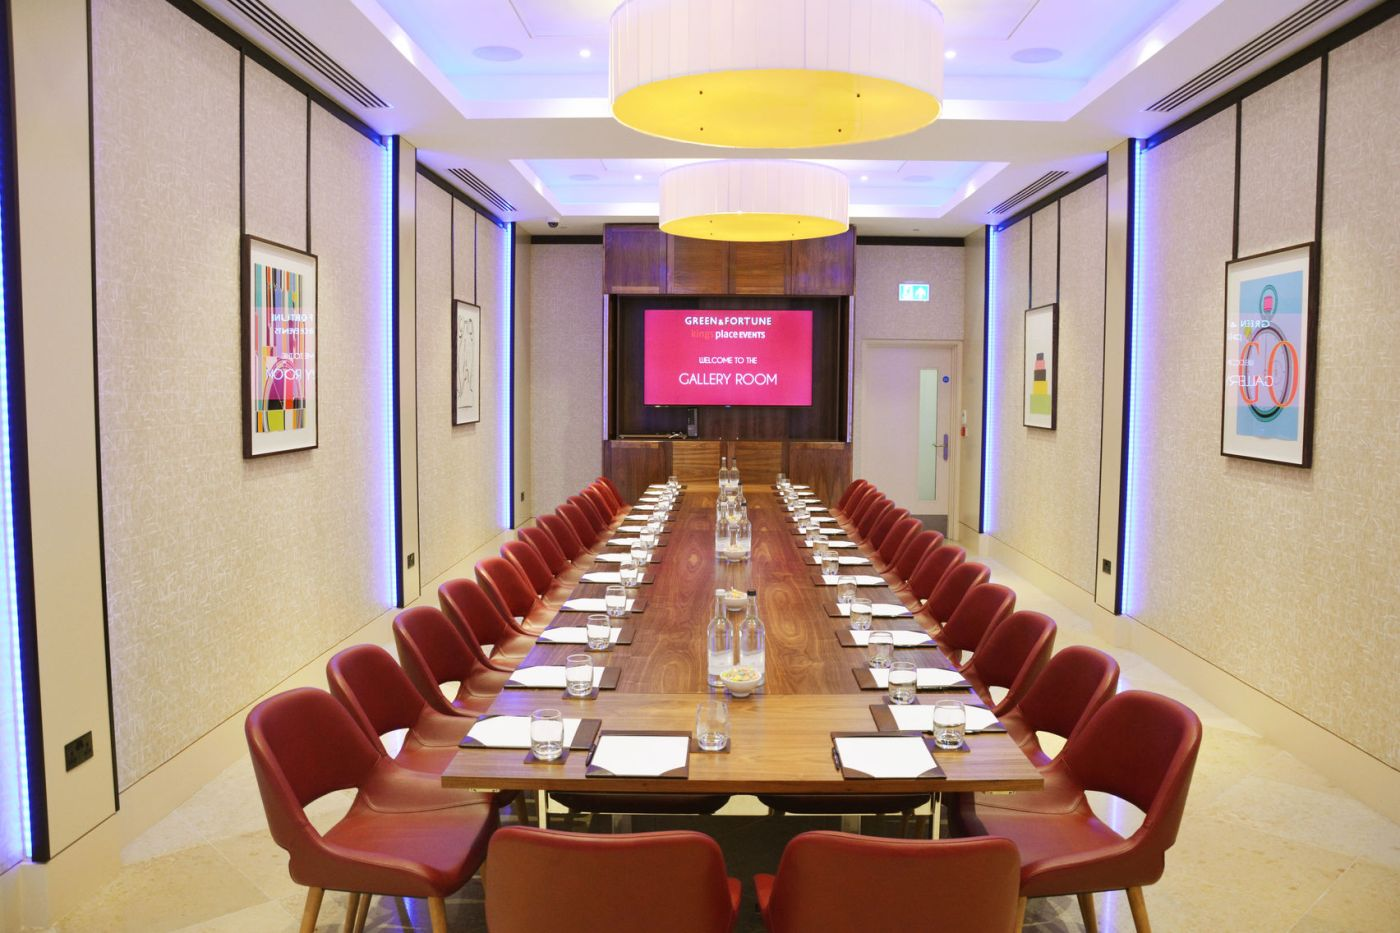 A long table with red chairs in a meeting room